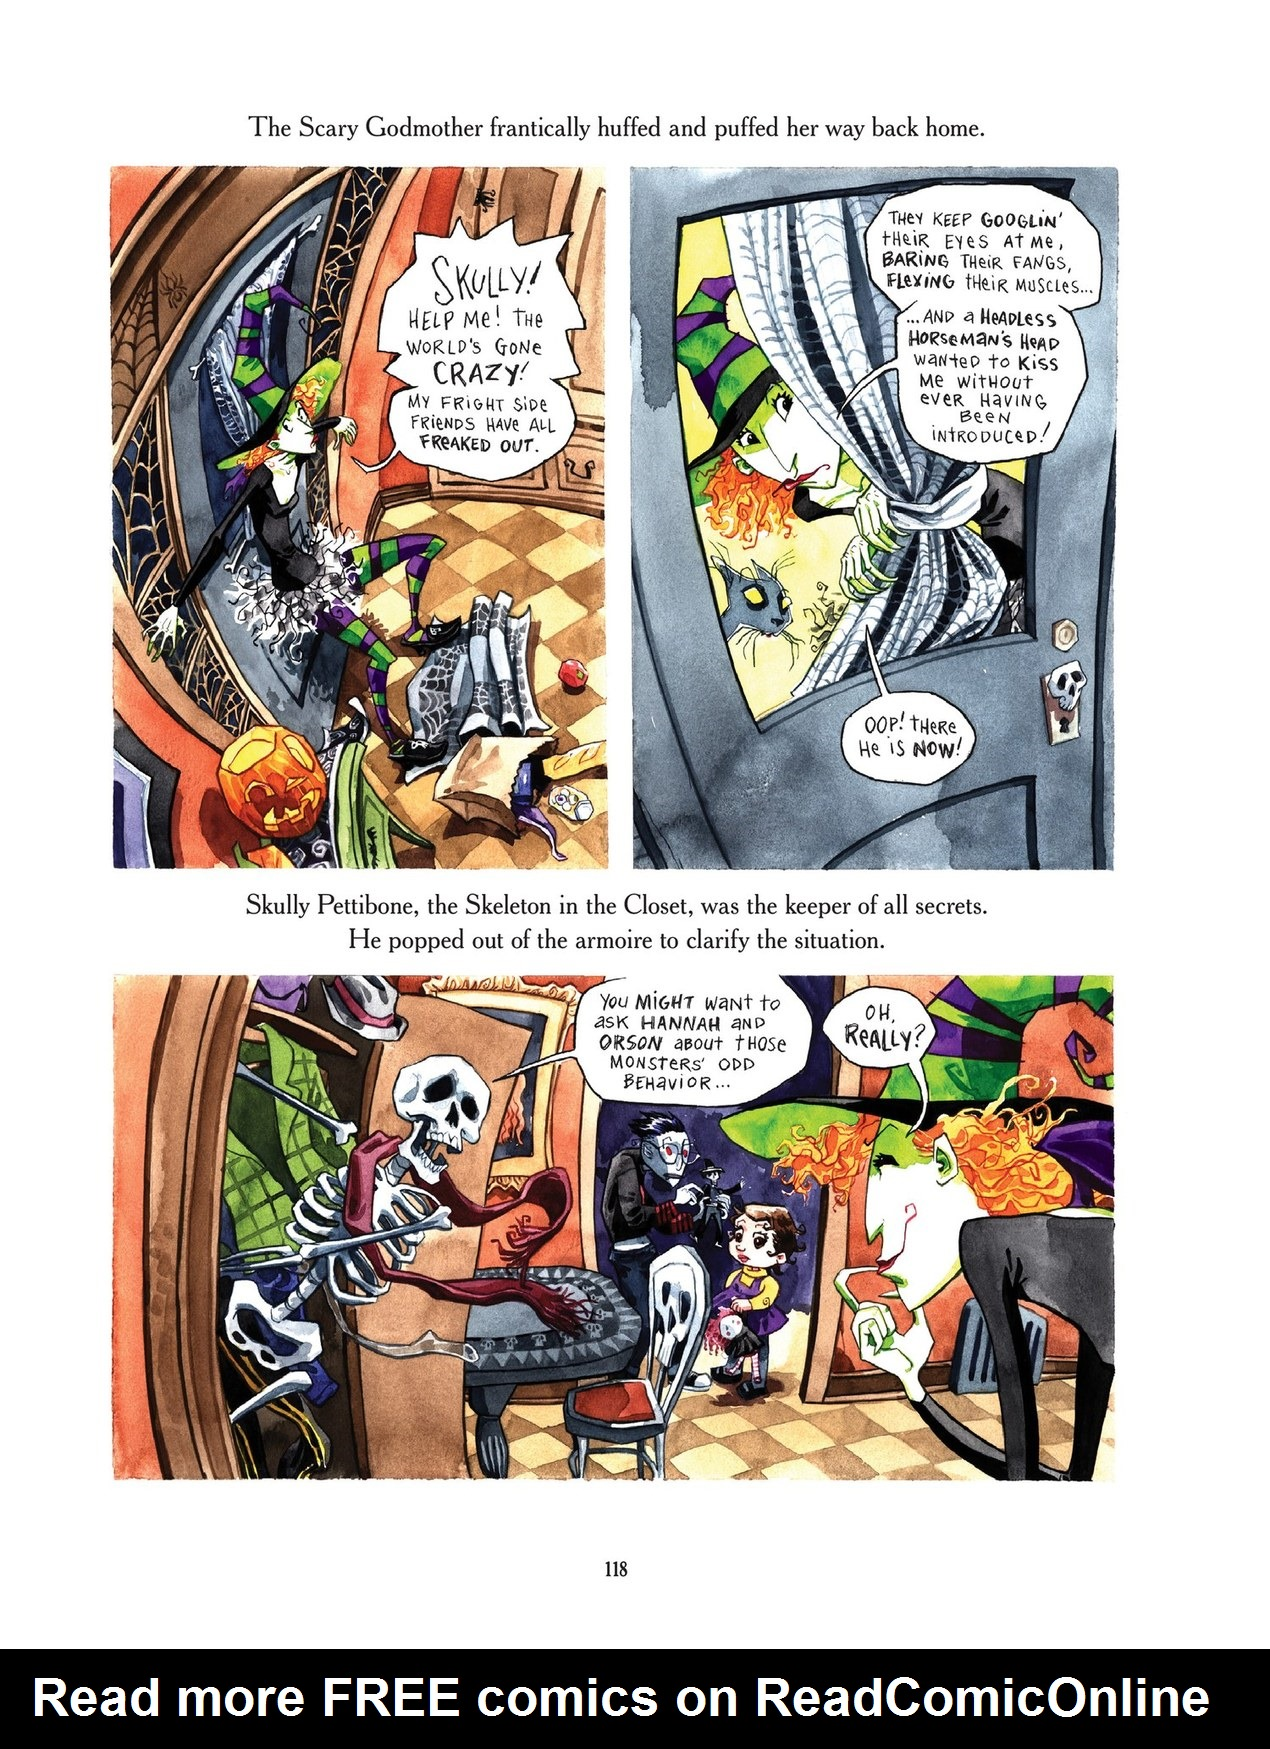 Read online Scary Godmother comic -  Issue # TPB - 118